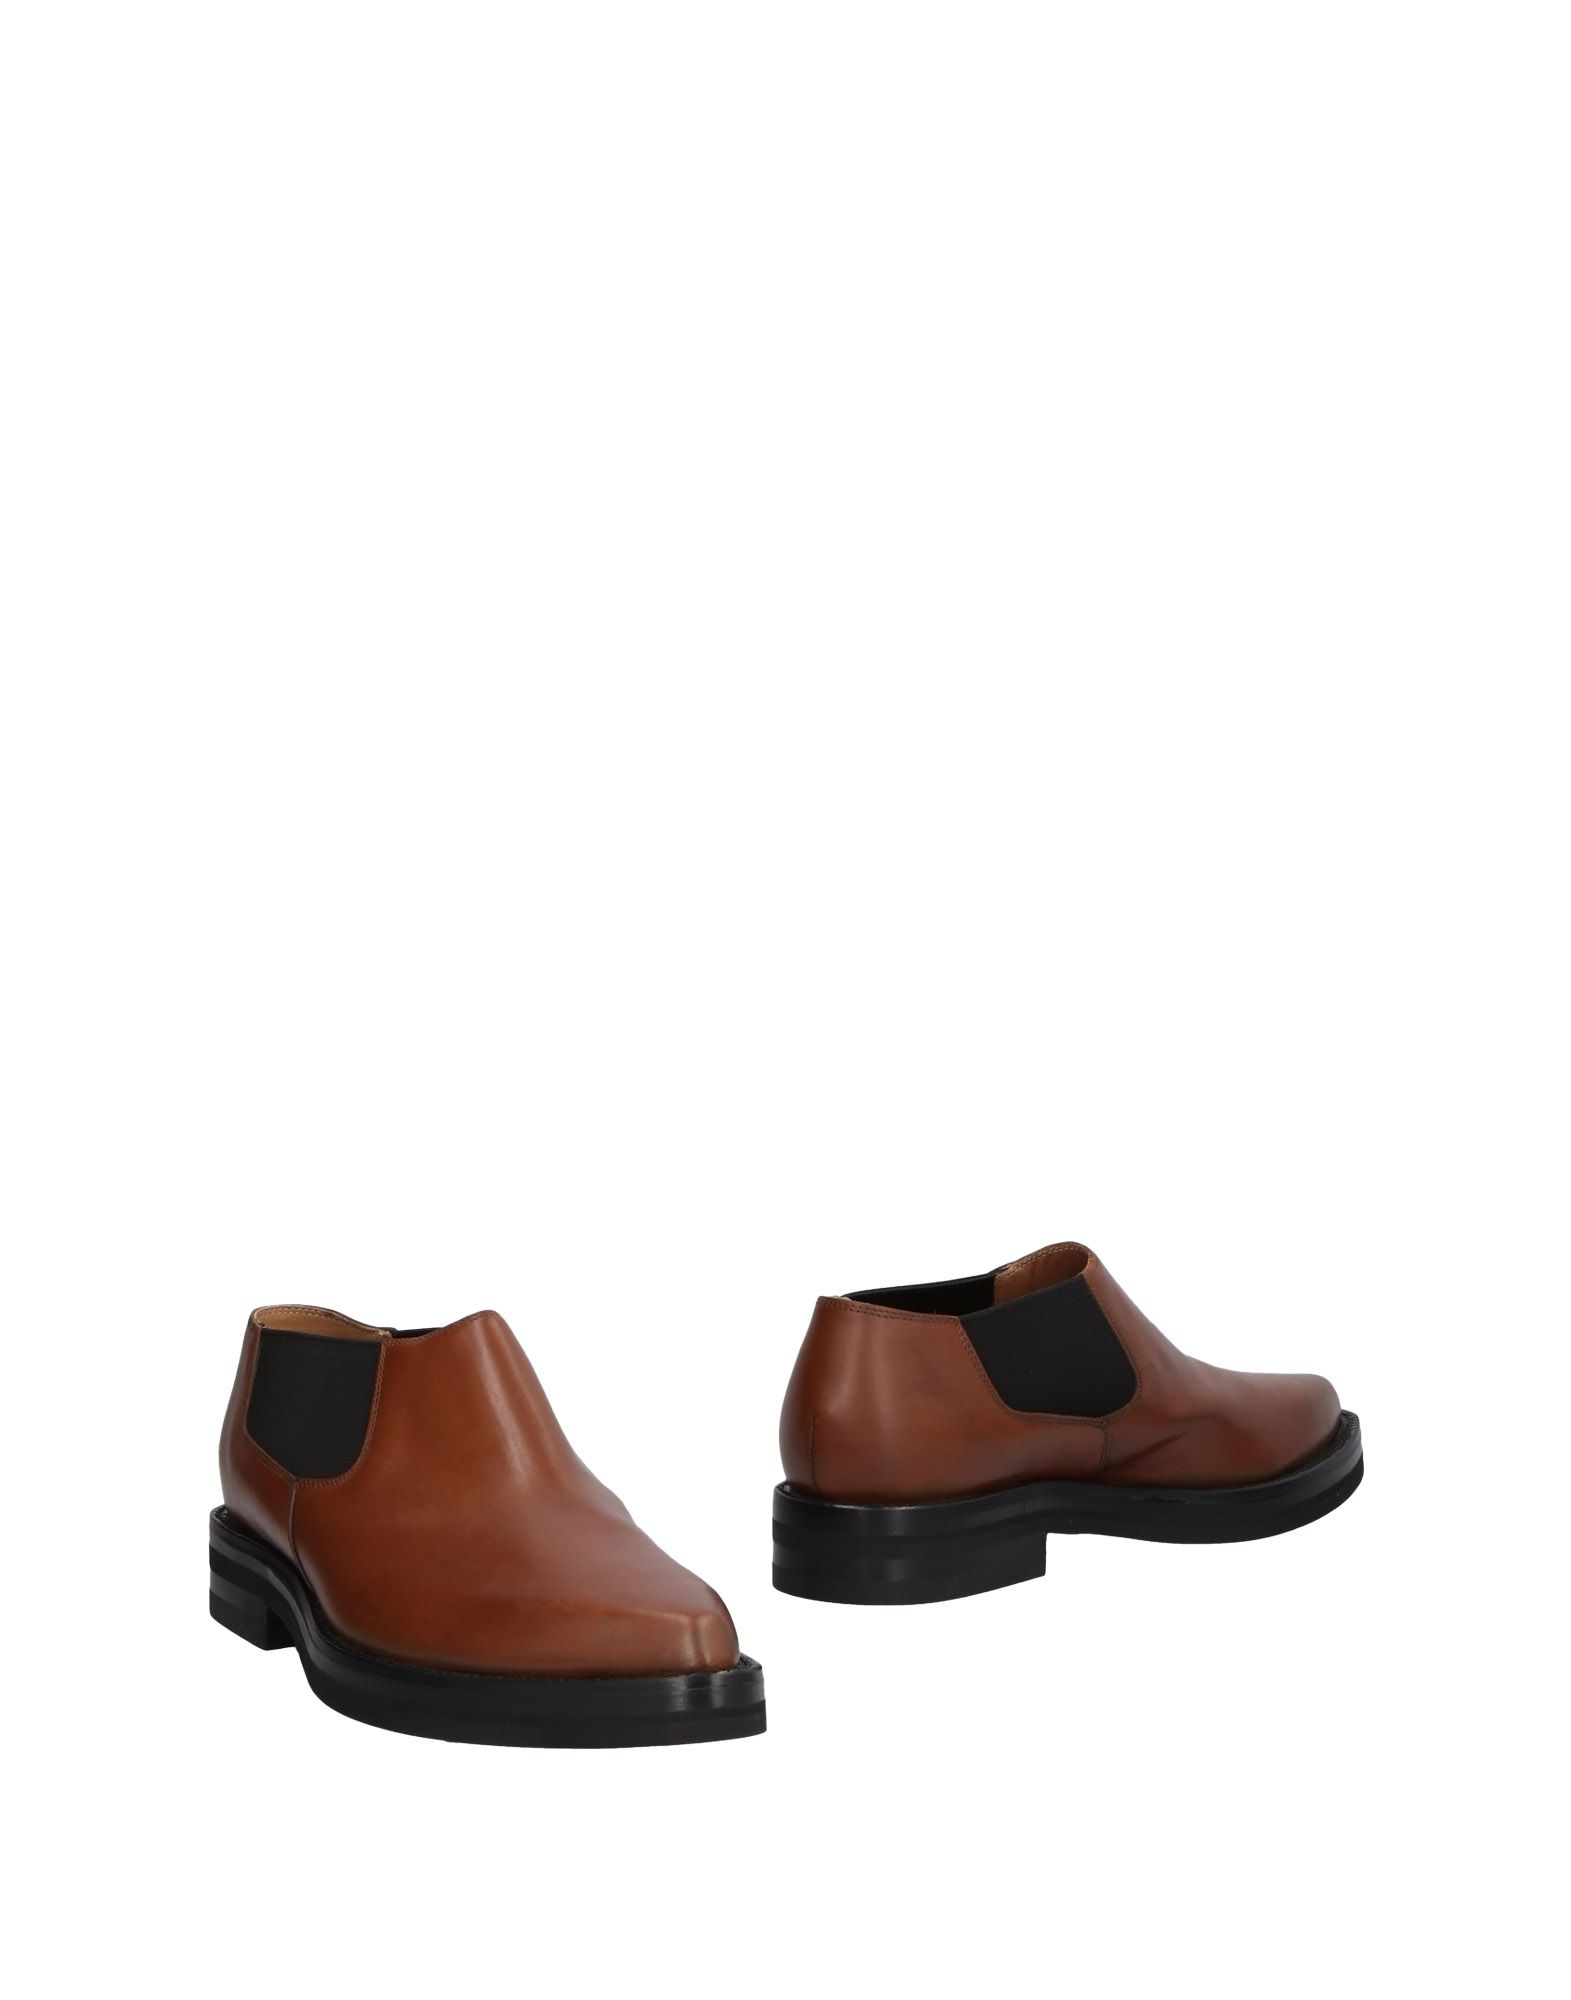 FOOTWEAR - Ankle boots on YOOX.COM Dries Van Noten T4hHaH